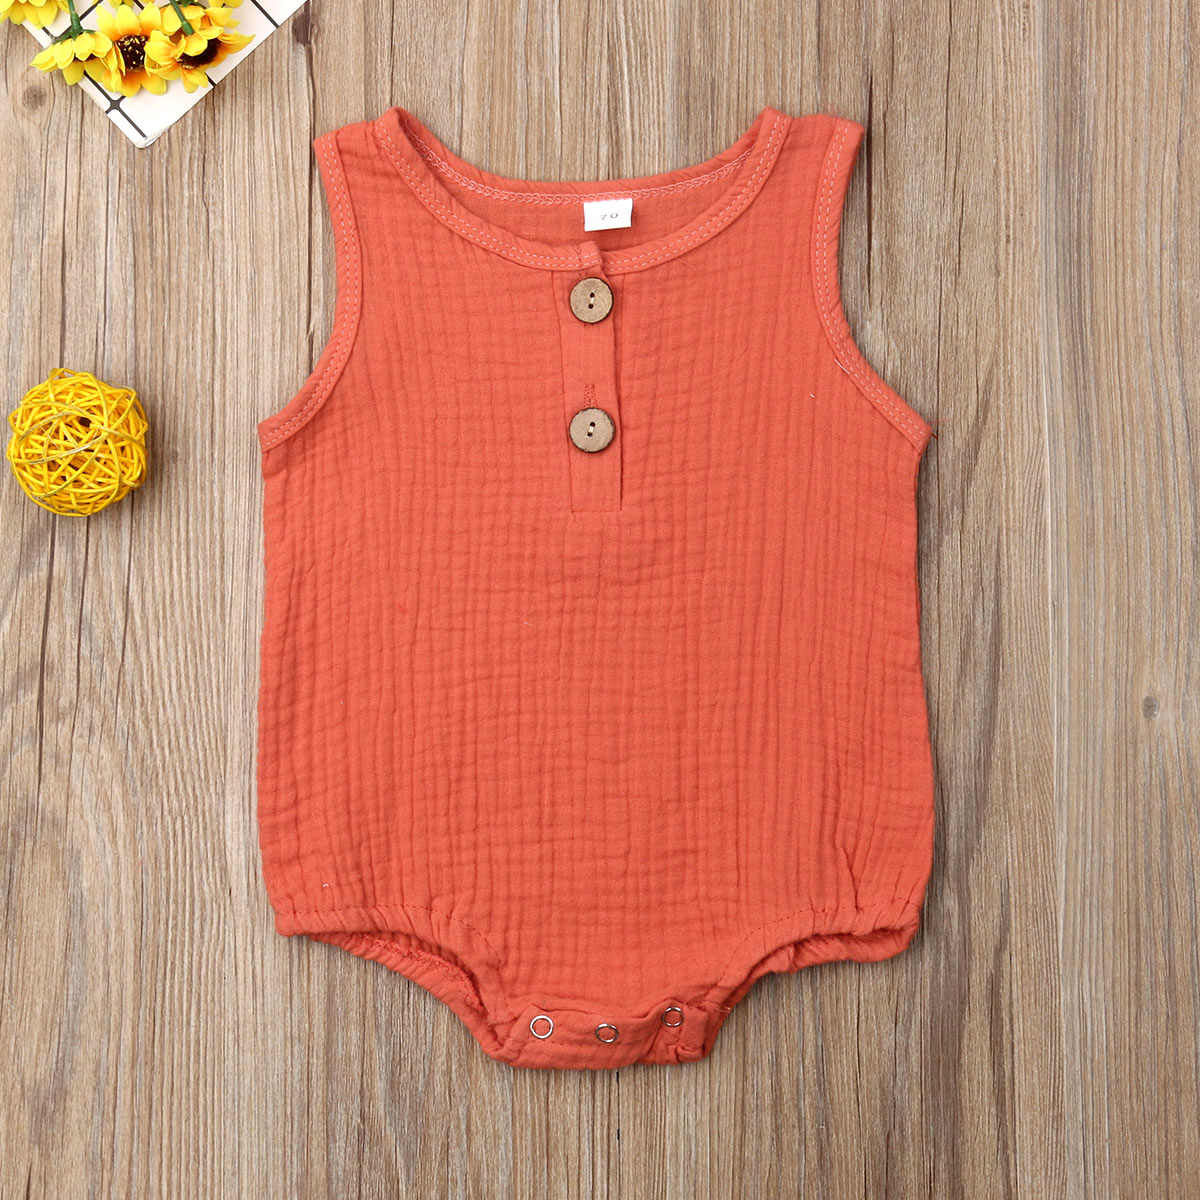 2019 Baby Summer Clothing Newborn Baby Boy Girl Kid Cotton Bodysuit Sleeveless Solid Color Jumpsuit Outfit Clothes Tops